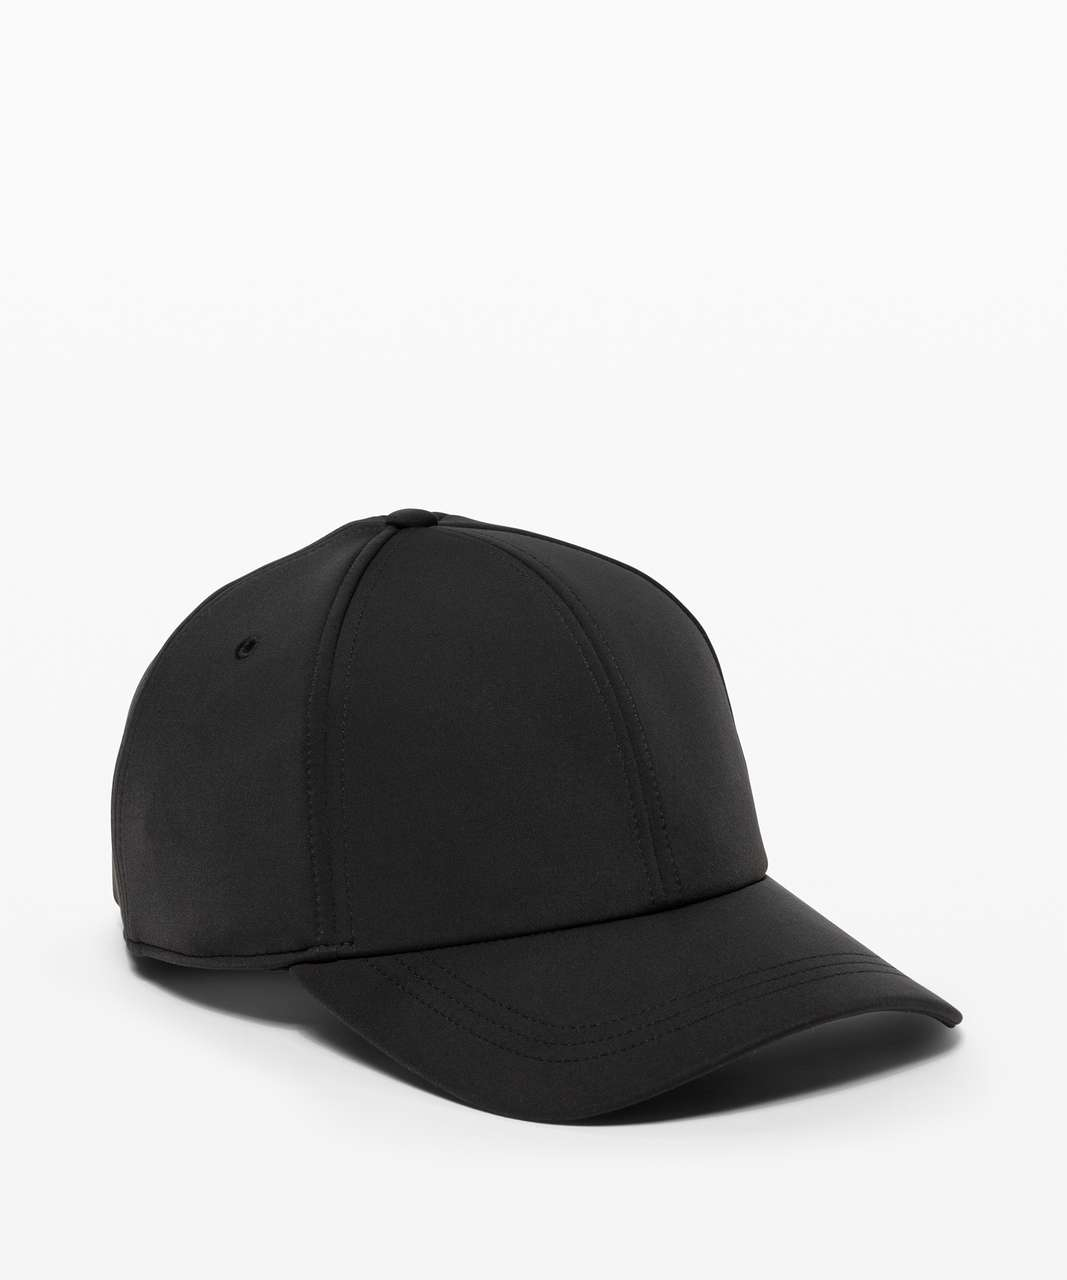 Lululemon Baller Hat - Black (Third Release)